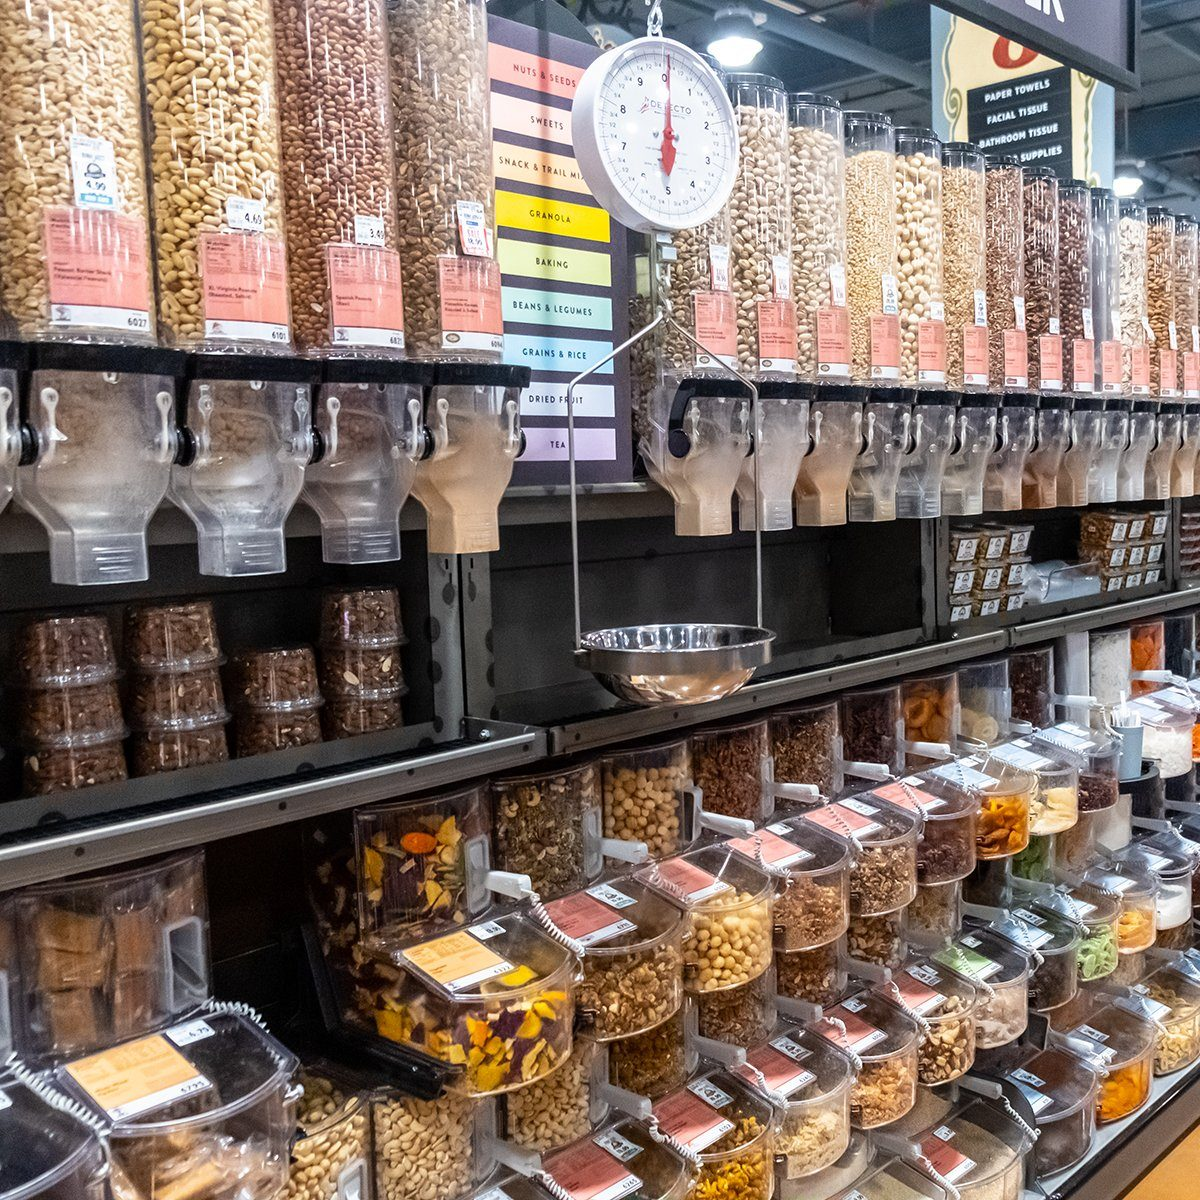 Davis, CA/USA 9/5/2019 Bulk food dispensers of organic healthy nuts, grains, dried fruits, pasta, spices and much more in a supermarket aisle; Shutterstock ID 1496915084; Job (TFH, TOH, RD, BNB, CWM, CM): TOH